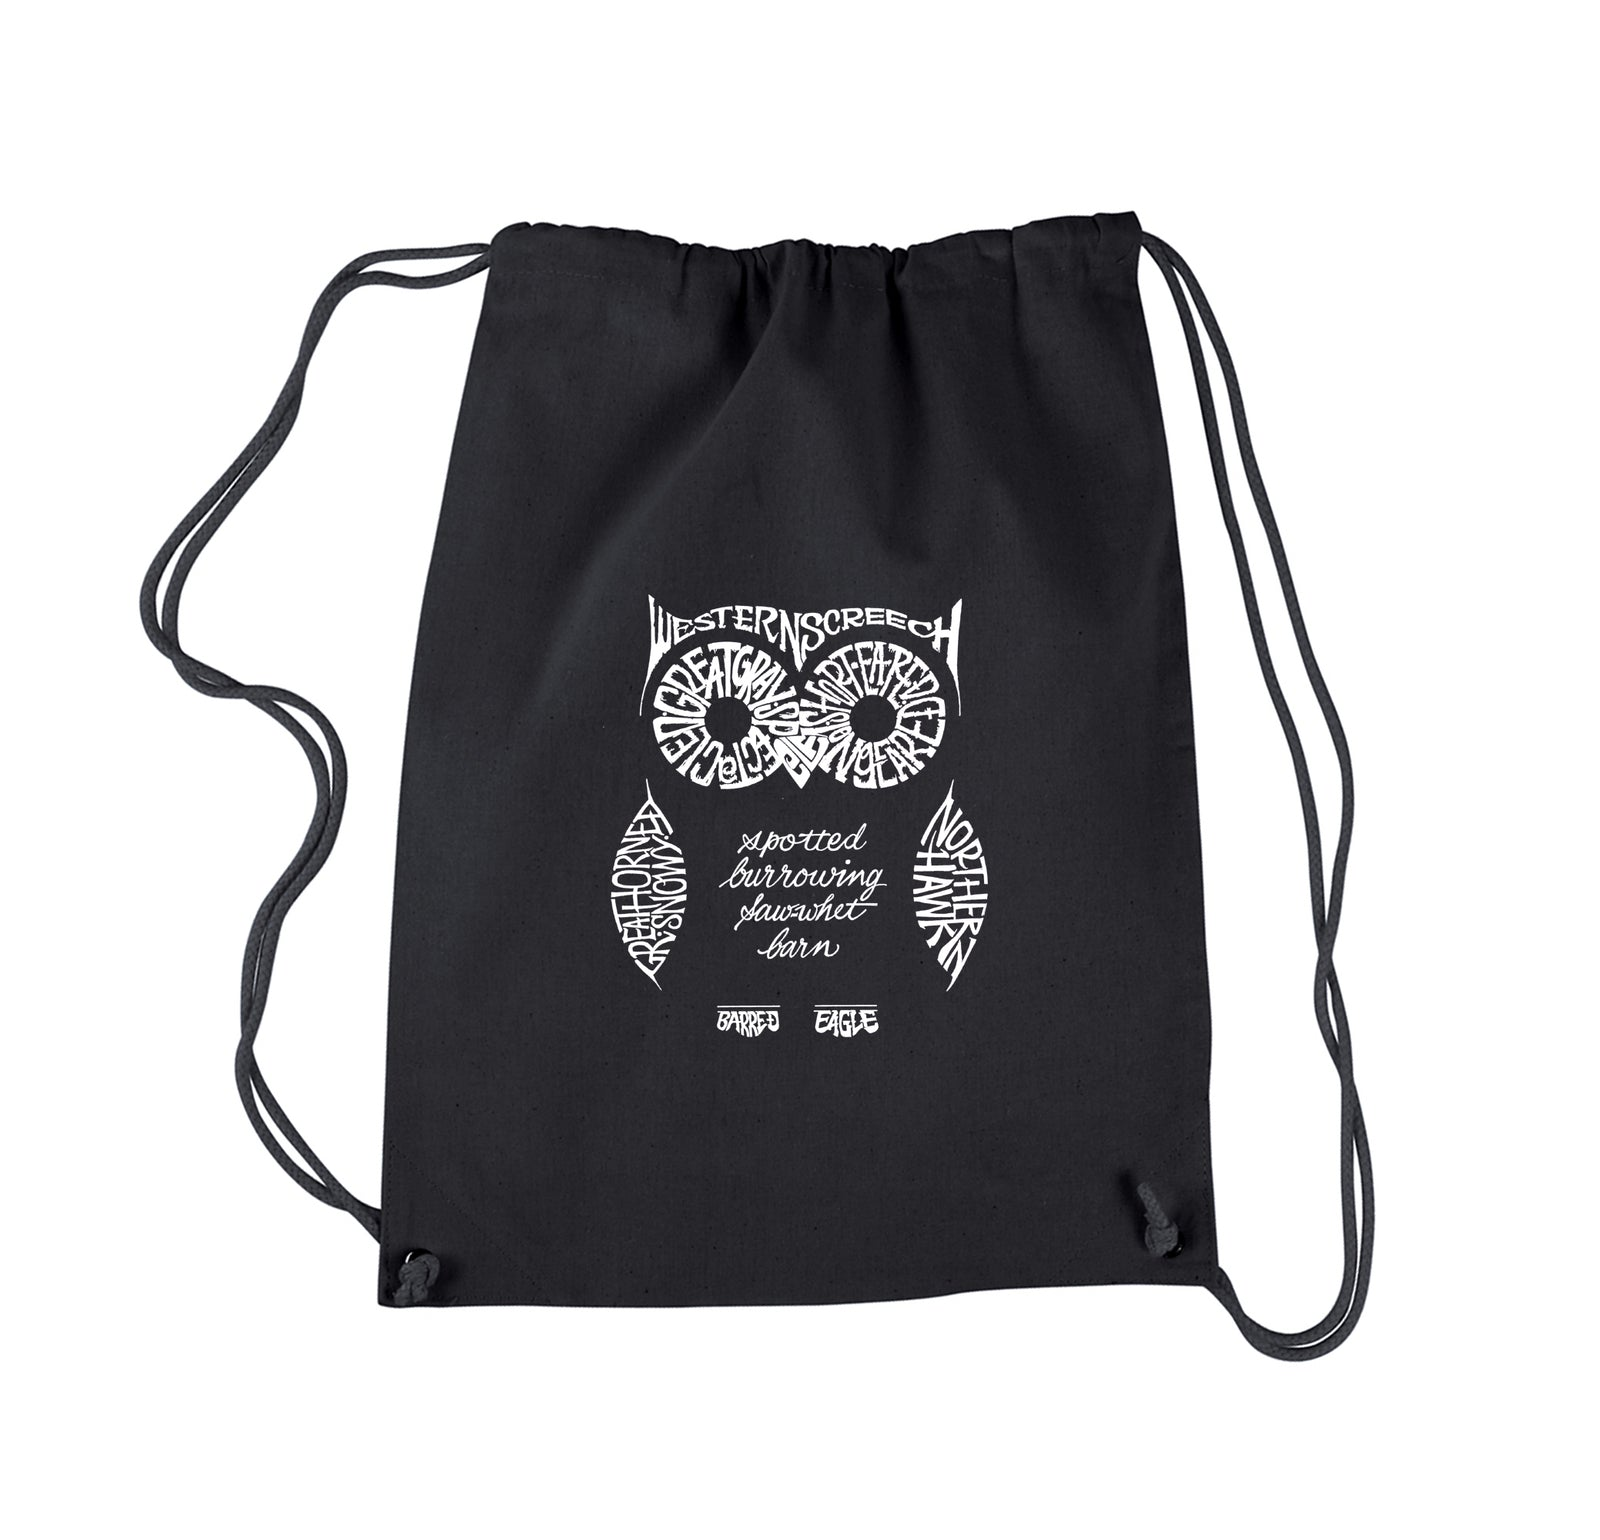 Los Angeles Pop Art Drawstring Backpack - Owl